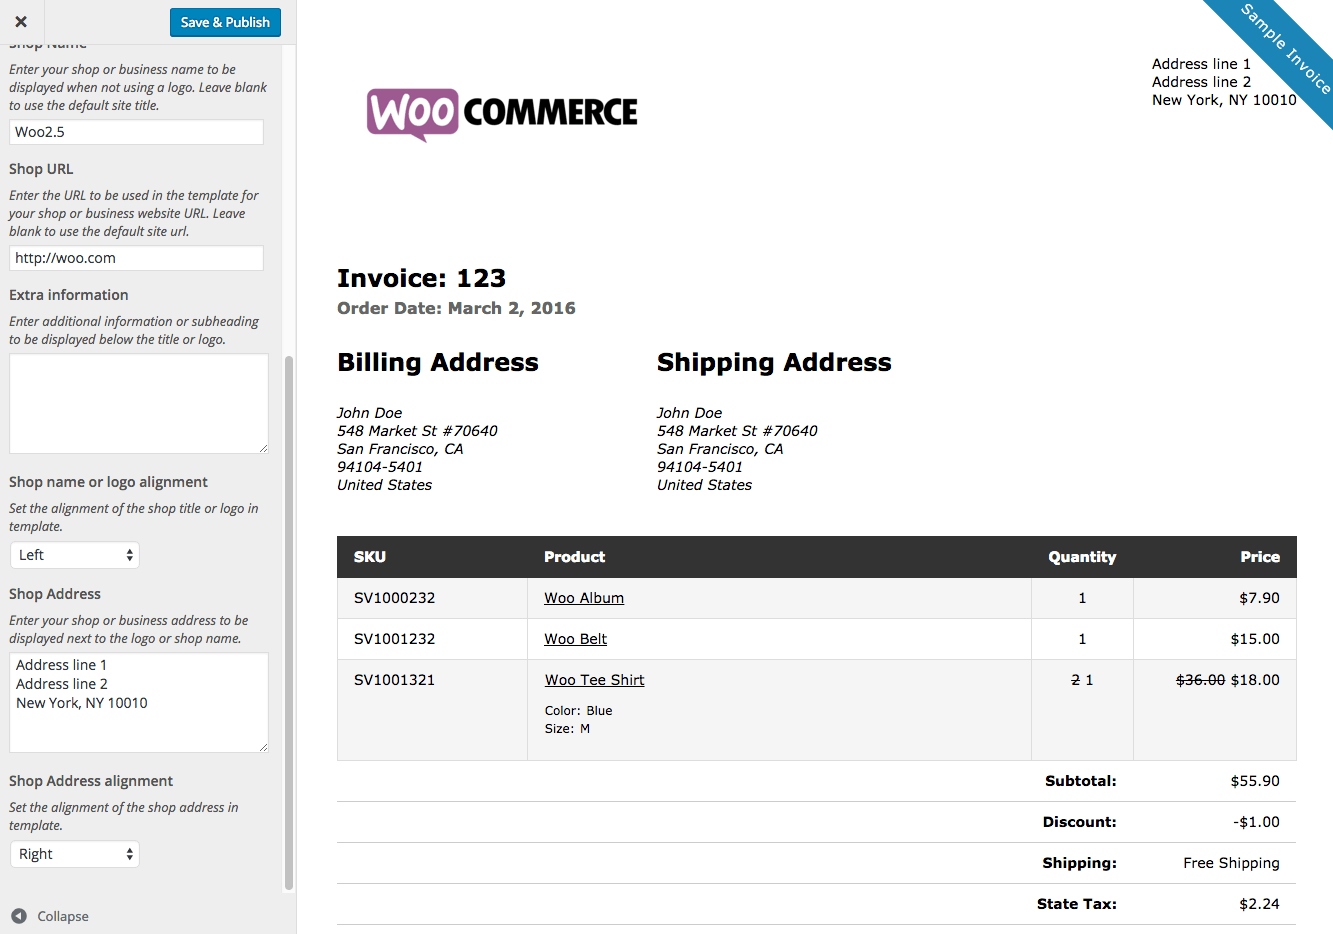 Shopdesignsus  Marvelous Print Invoices Amp Packing Lists  Woocommerce With Magnificent Woocommerce Print Invoices  Packing Lists Customizer With Appealing Llc Gross Receipts Tax Also Silent Auction Receipt In Addition Chili Receipts And Kfc Receipt As Well As Email Receipt Notification Additionally Acknowledgement Of Receipt Template From Woocommercecom With Shopdesignsus  Magnificent Print Invoices Amp Packing Lists  Woocommerce With Appealing Woocommerce Print Invoices  Packing Lists Customizer And Marvelous Llc Gross Receipts Tax Also Silent Auction Receipt In Addition Chili Receipts From Woocommercecom